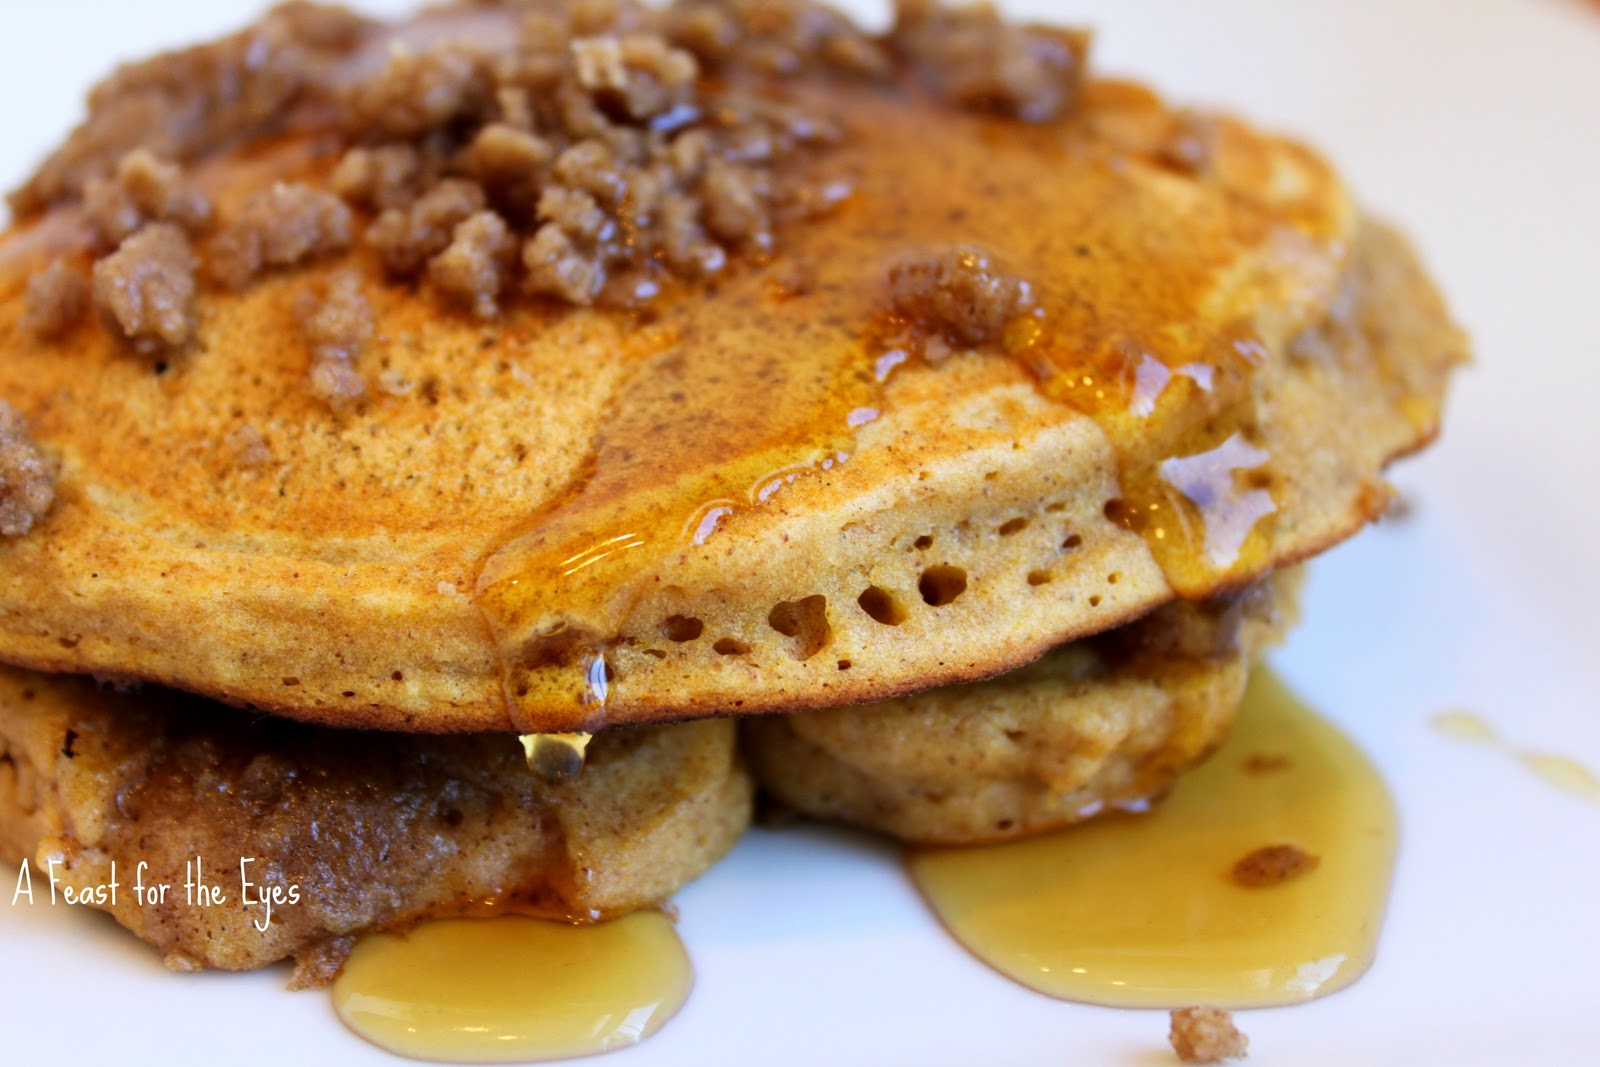 Feast for the Eyes: Pumpkin-Cinnamon Streusel Pancakes